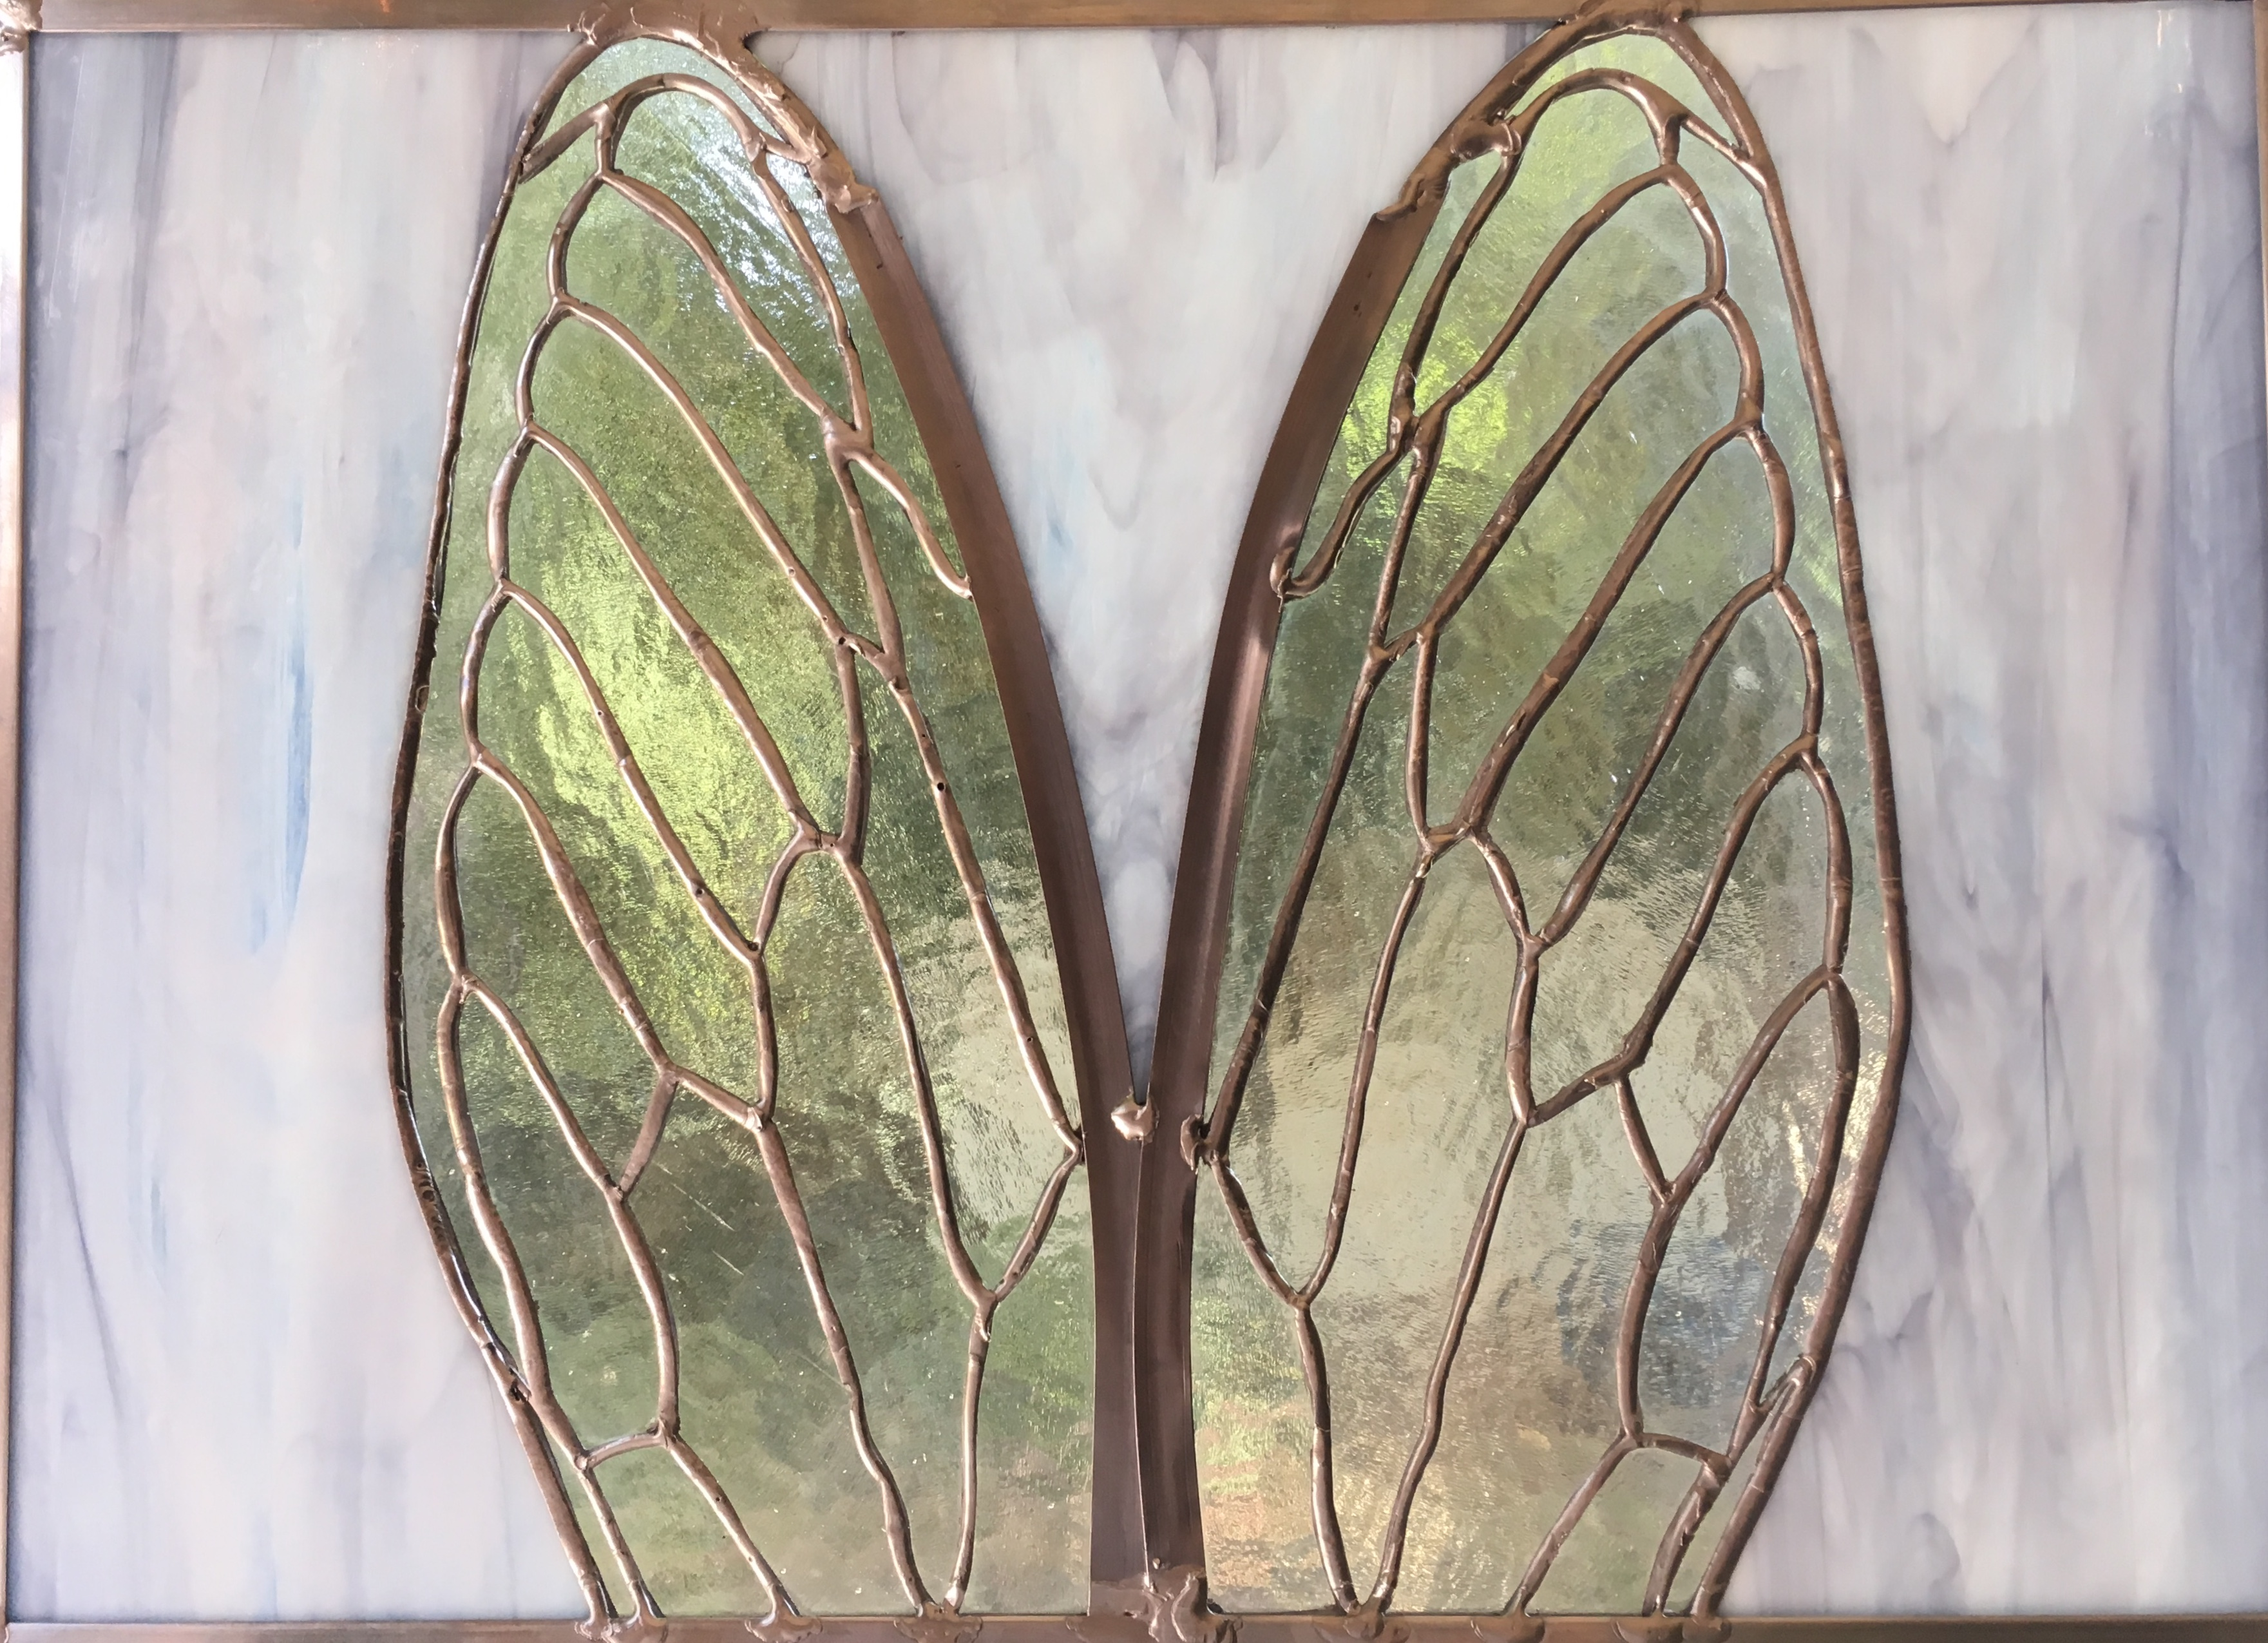 Cicada wings with leading edges joined.